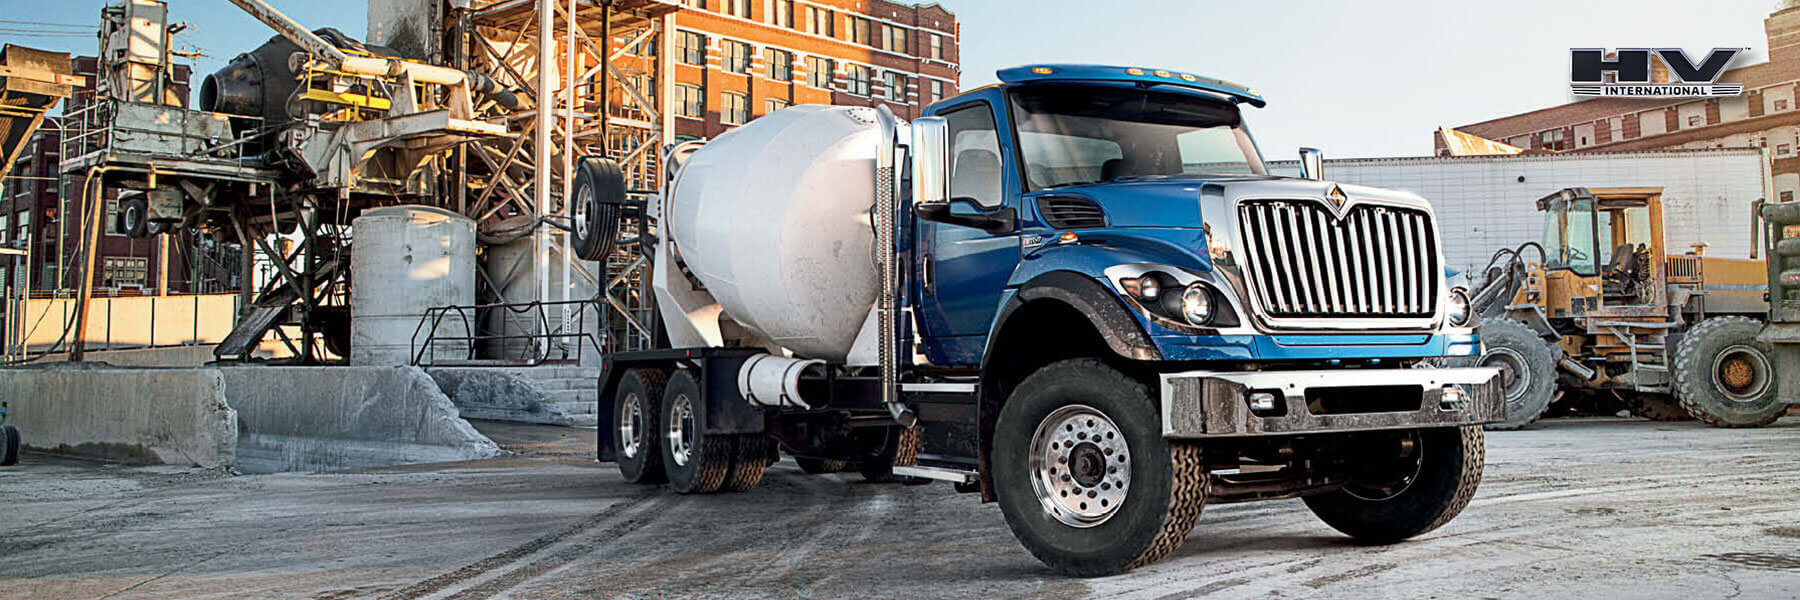 Medium Amp Heavy Duty Commercial Truck For Sale Amp Leasing